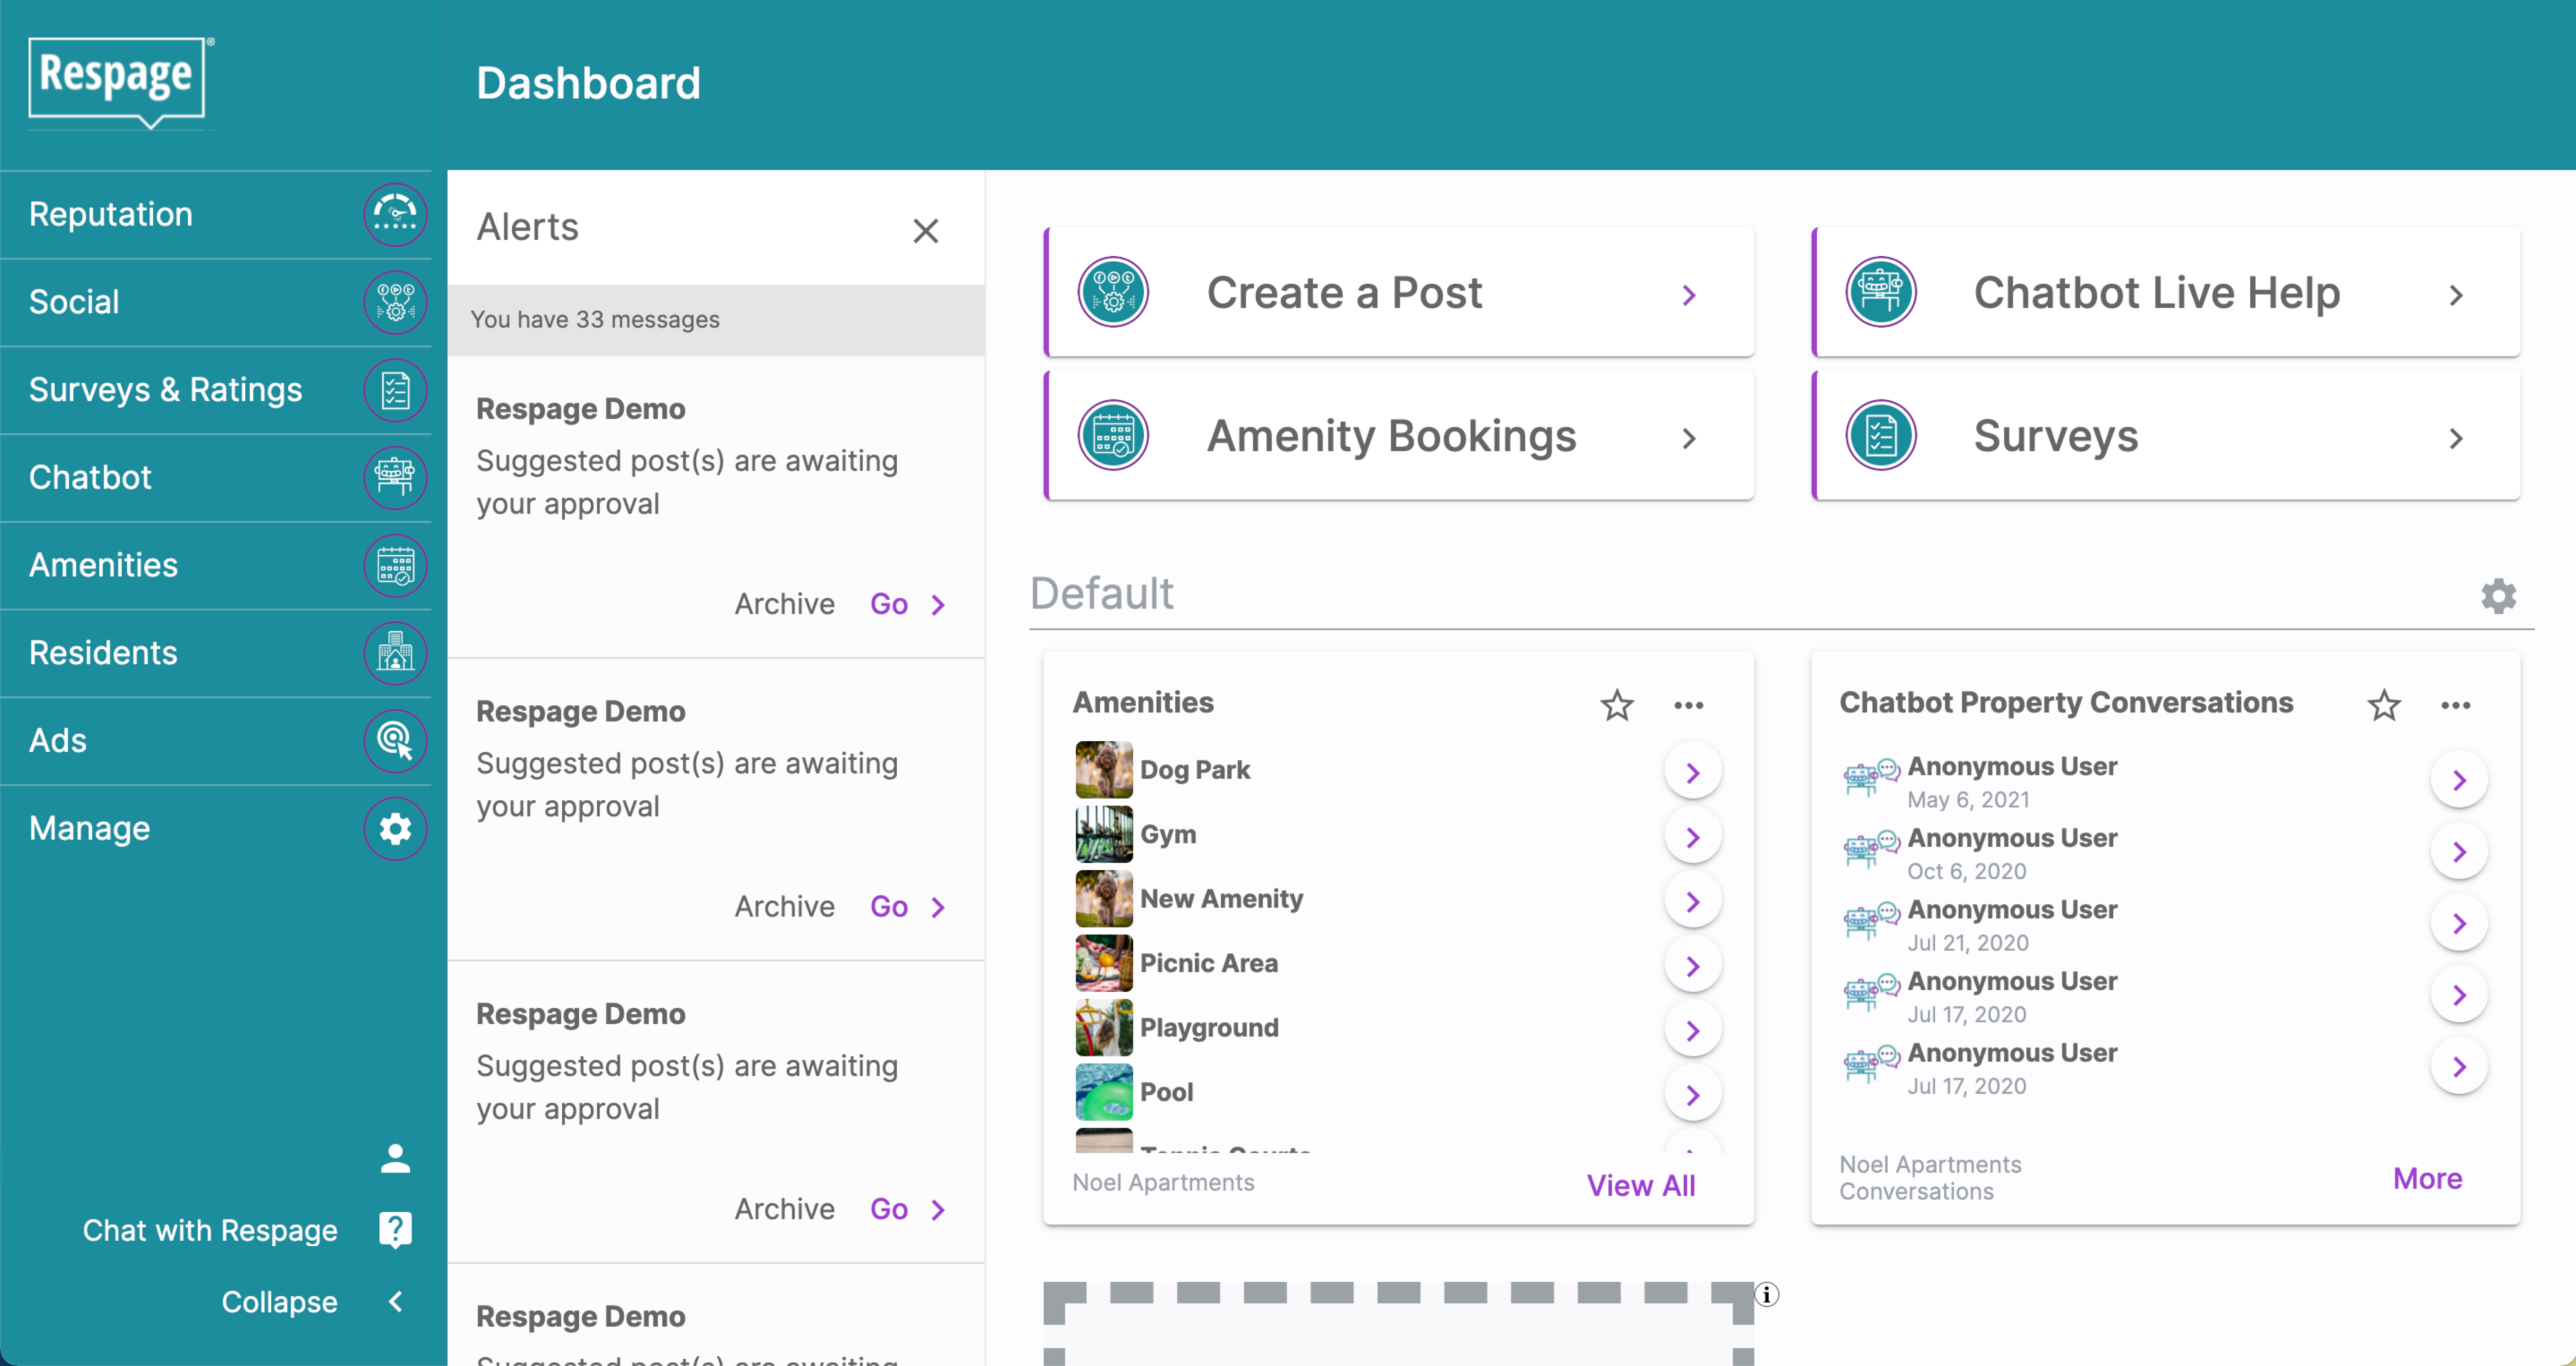 A screenshot of the Respage dashboard.